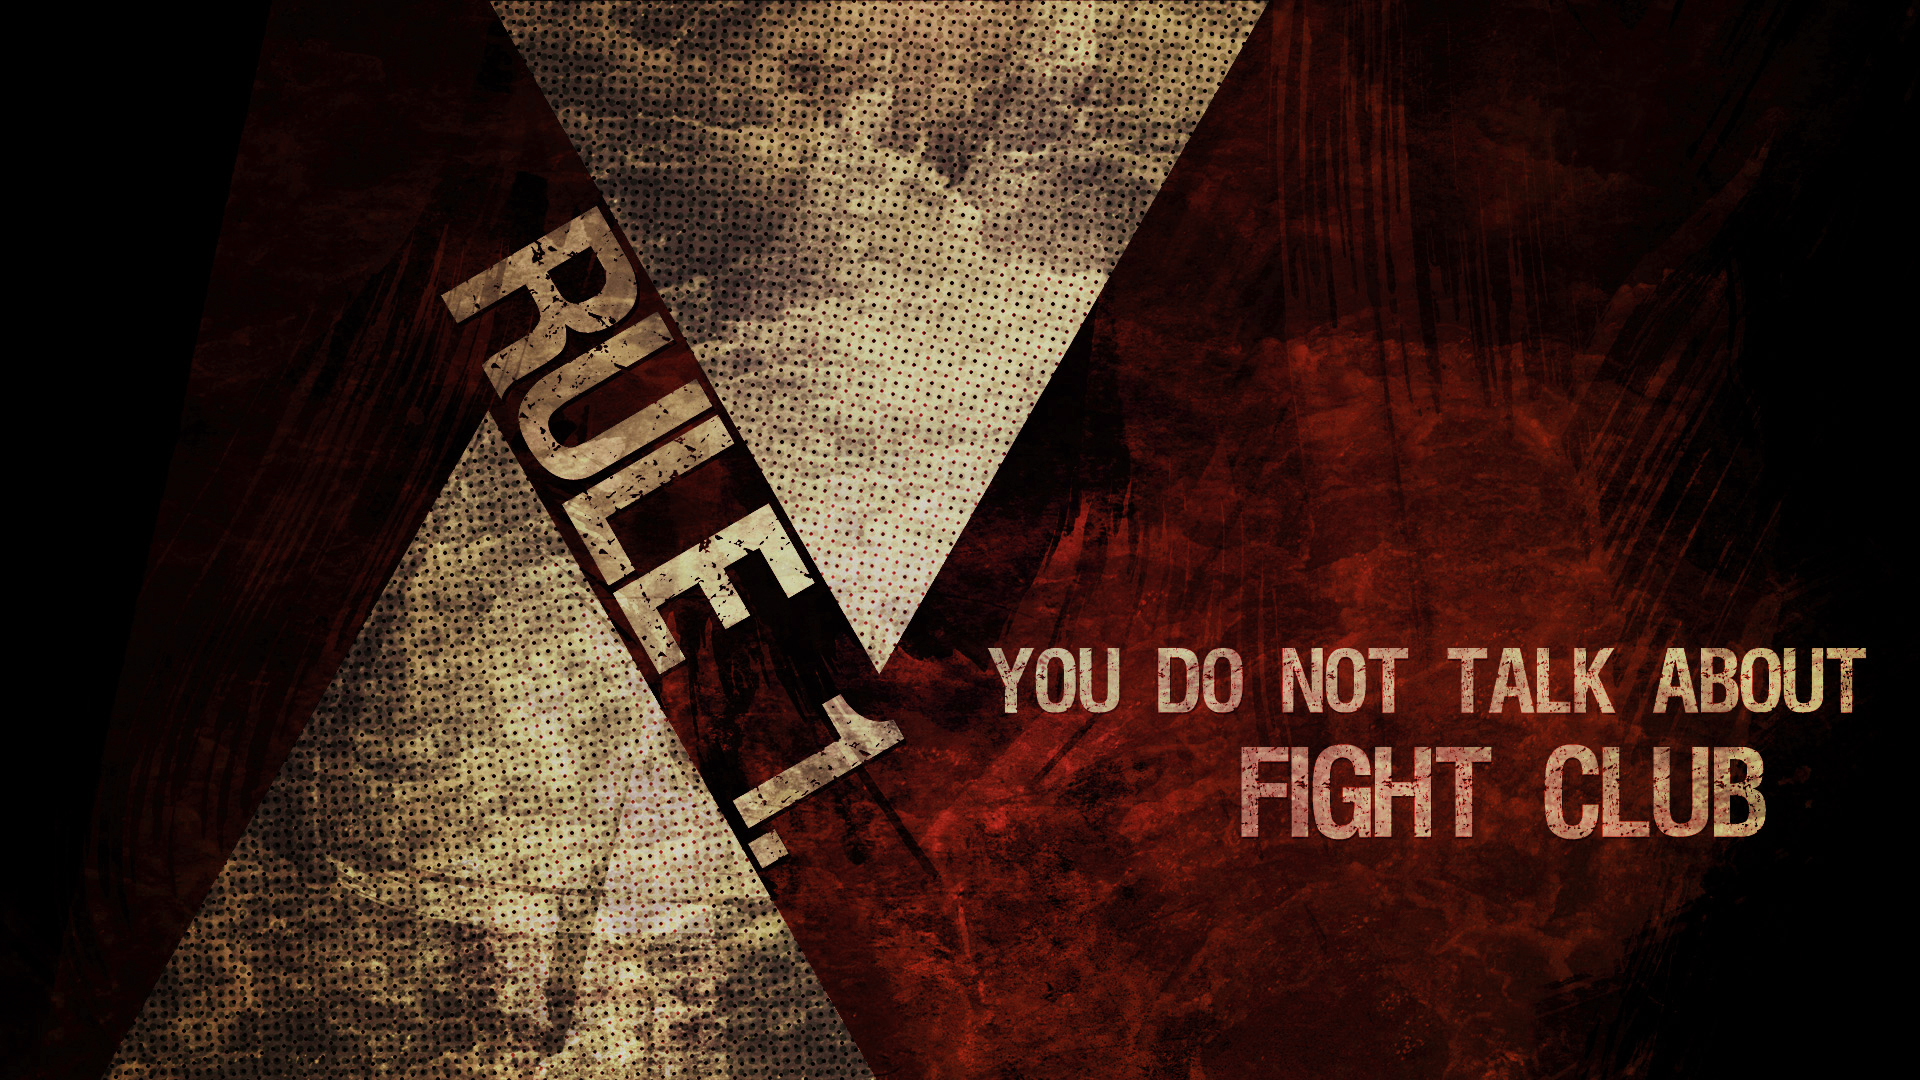 Fight-Club-1080p-http-and-backgrounds-net-fight-club-1080p-wallpaper-wp3805273